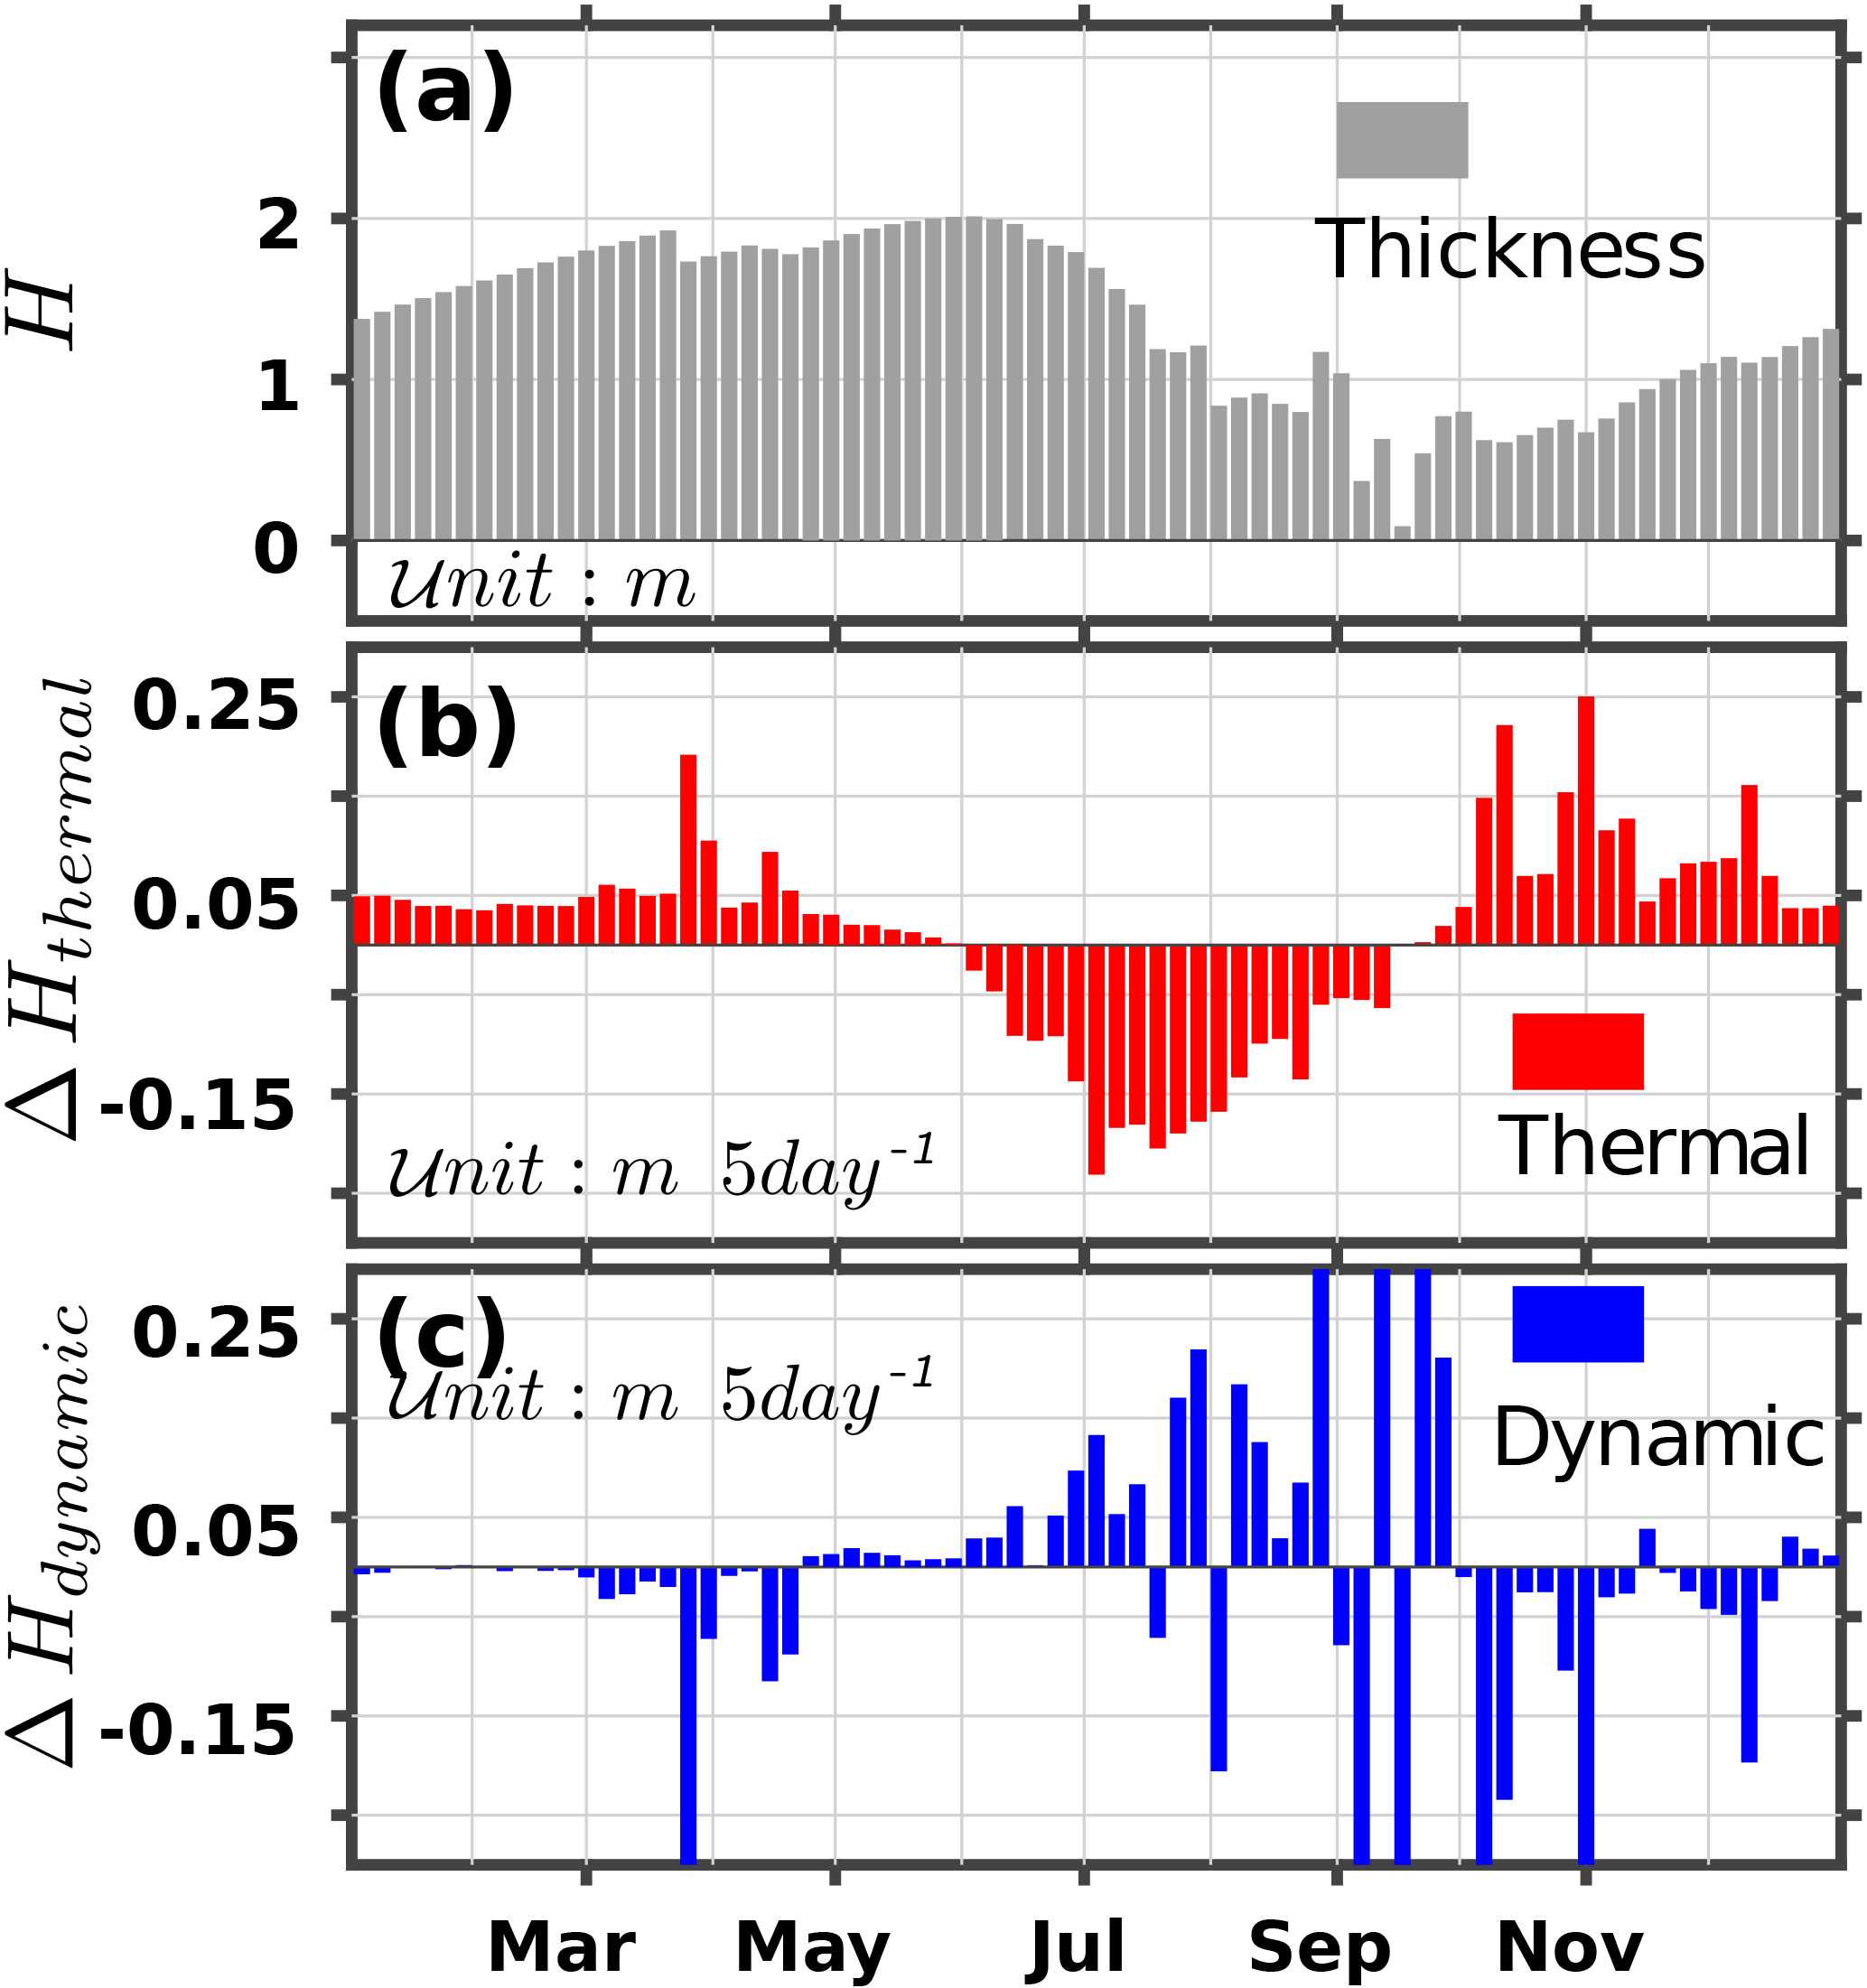 TC - Thermodynamic and dynamic ice thickness contributions